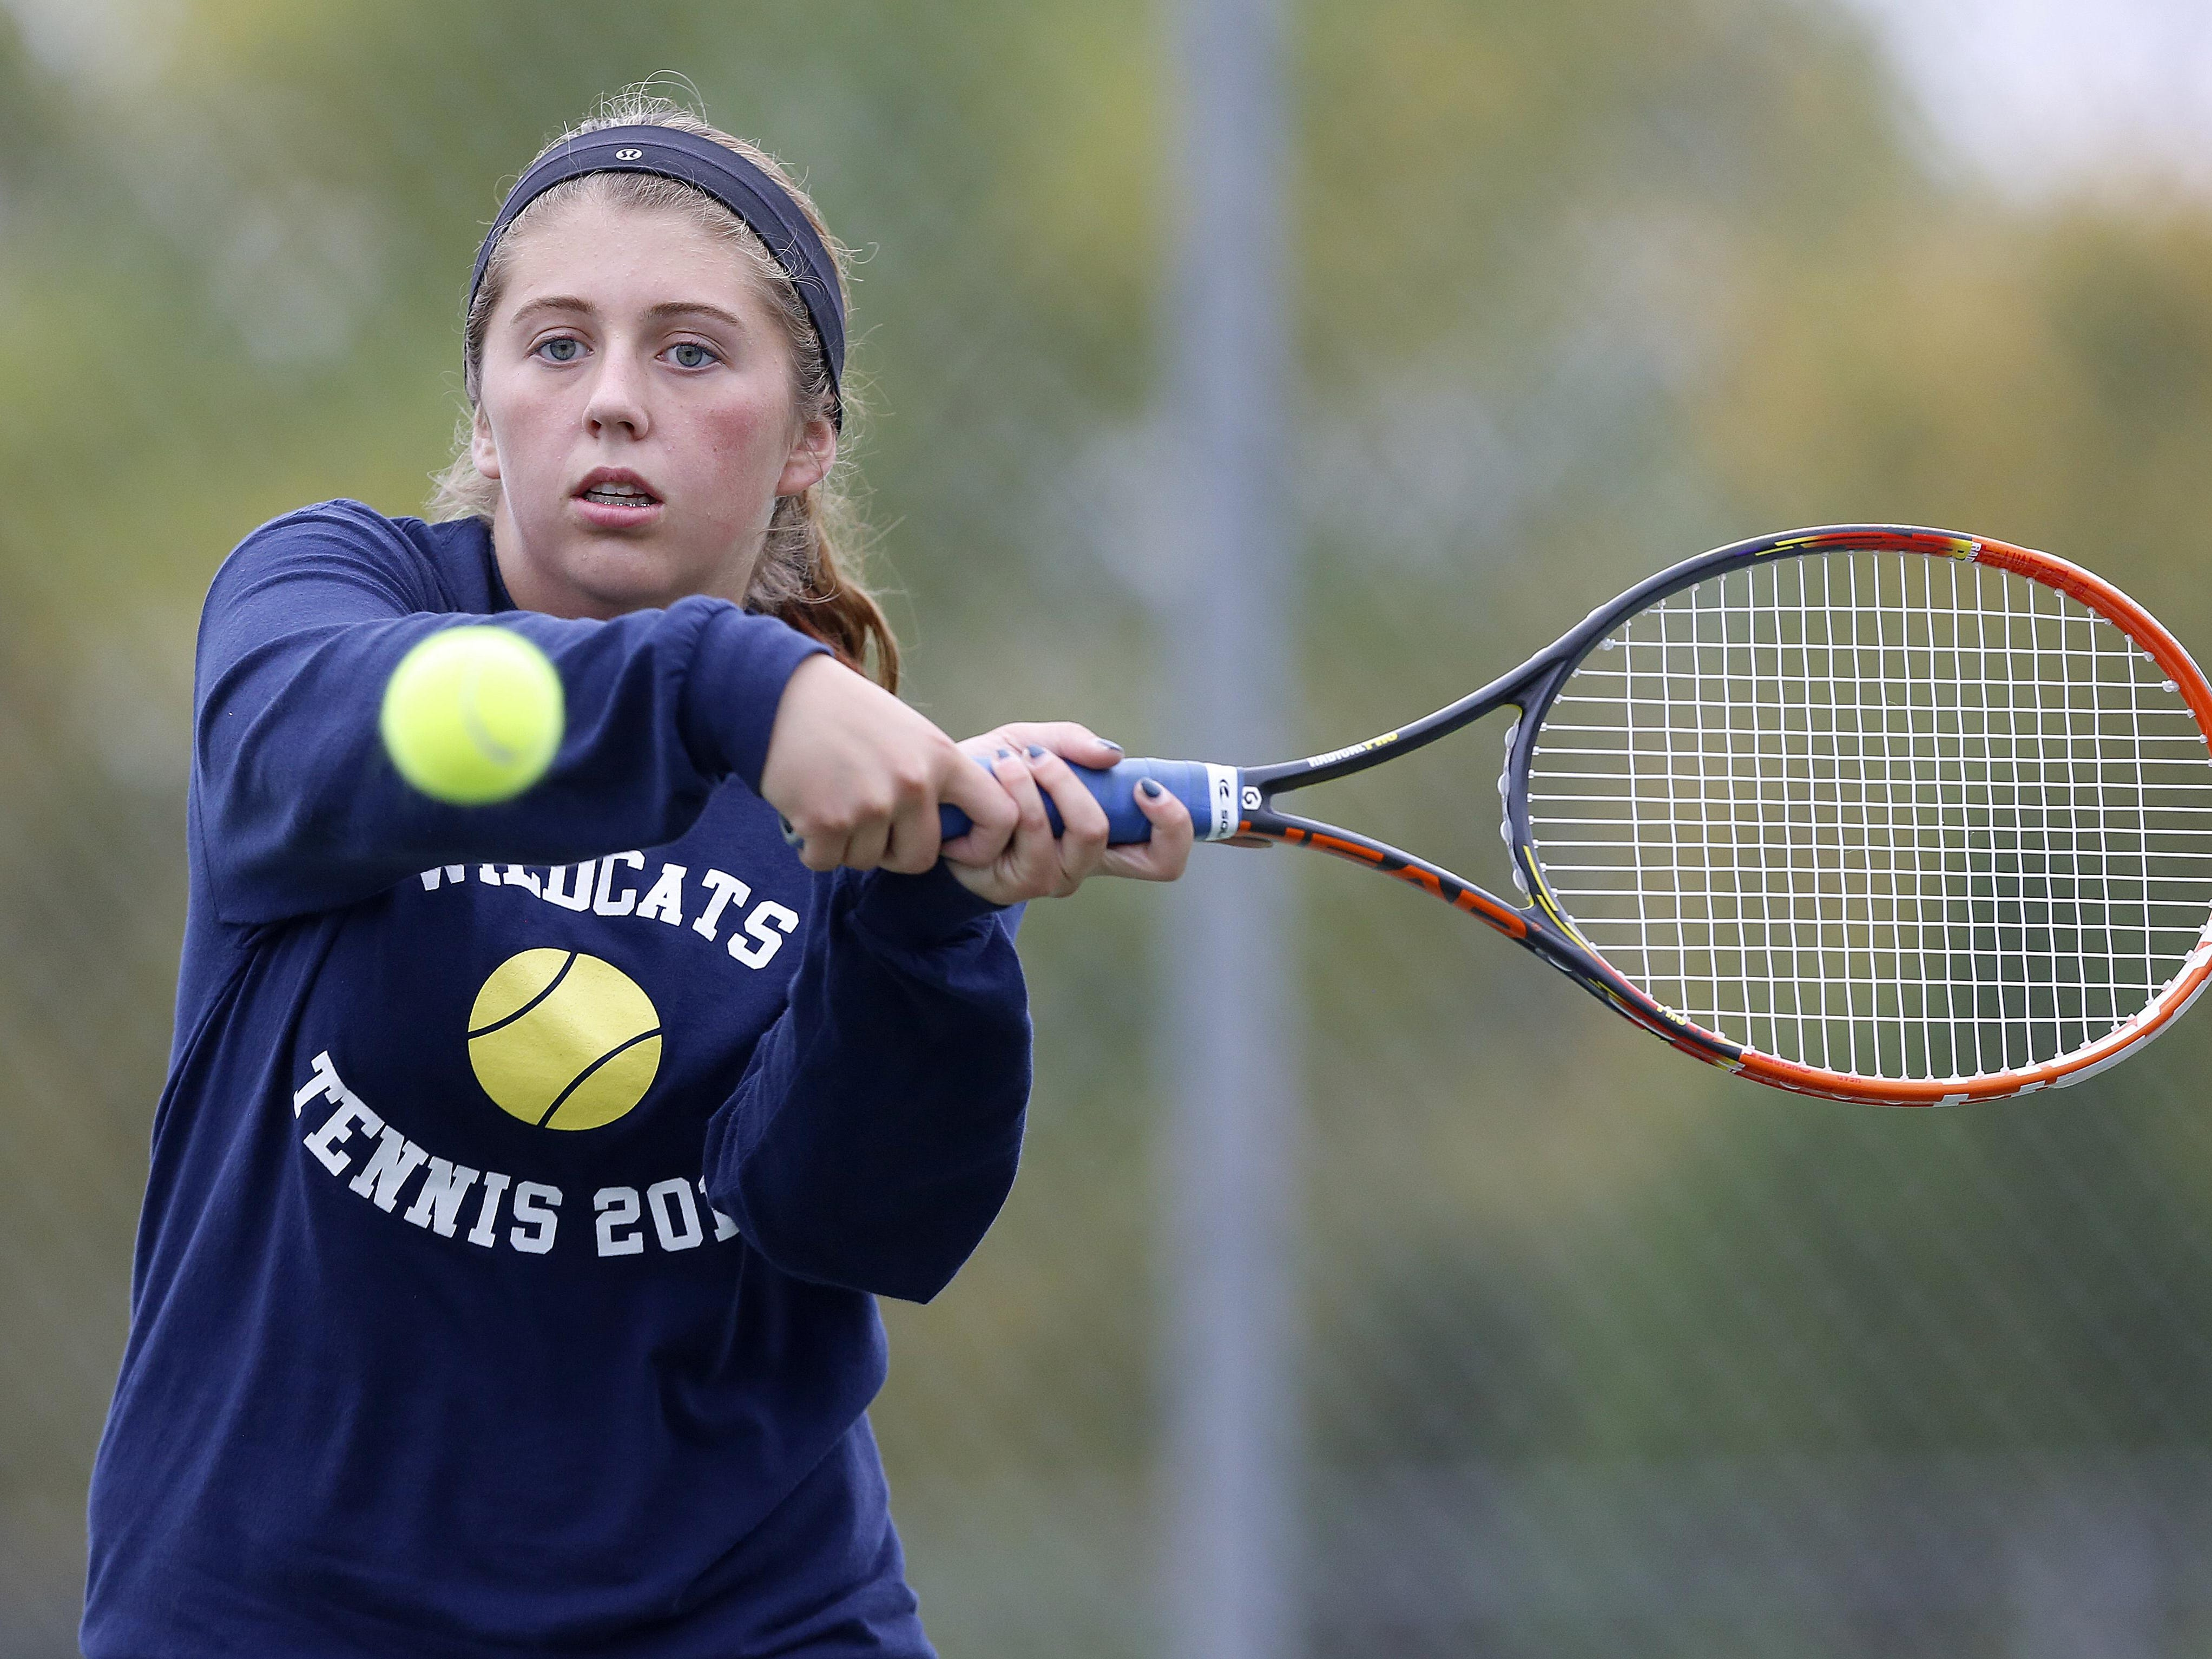 Junior Emily Edsell returns for the Wildcats at No. 1 singles after making it to state last year.